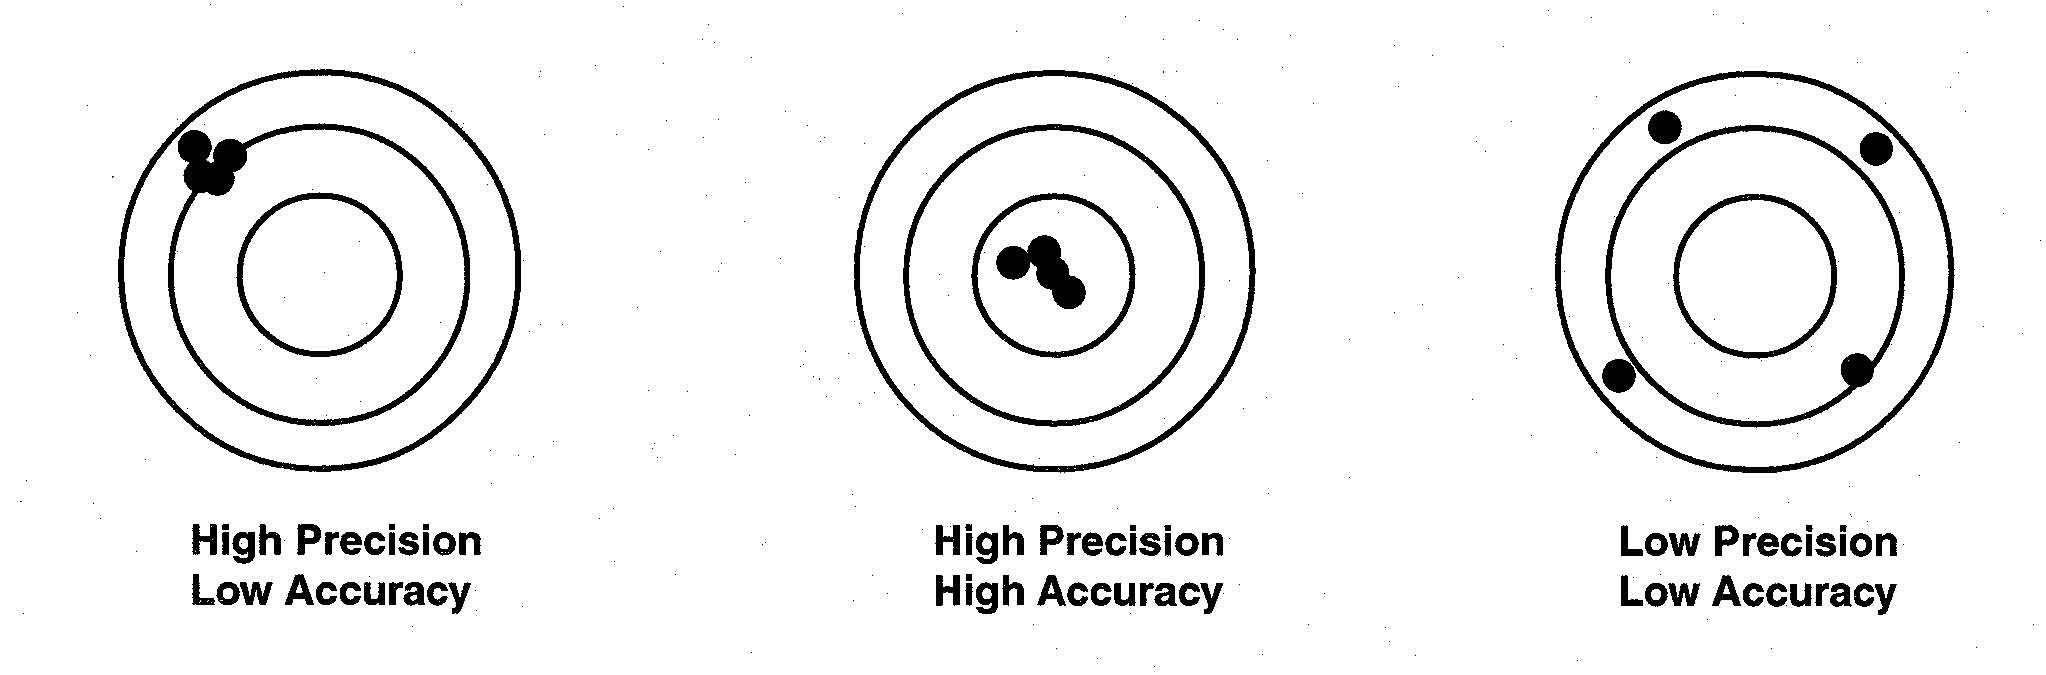 Accuracy Precision Of Instruments And Errors In Measurements